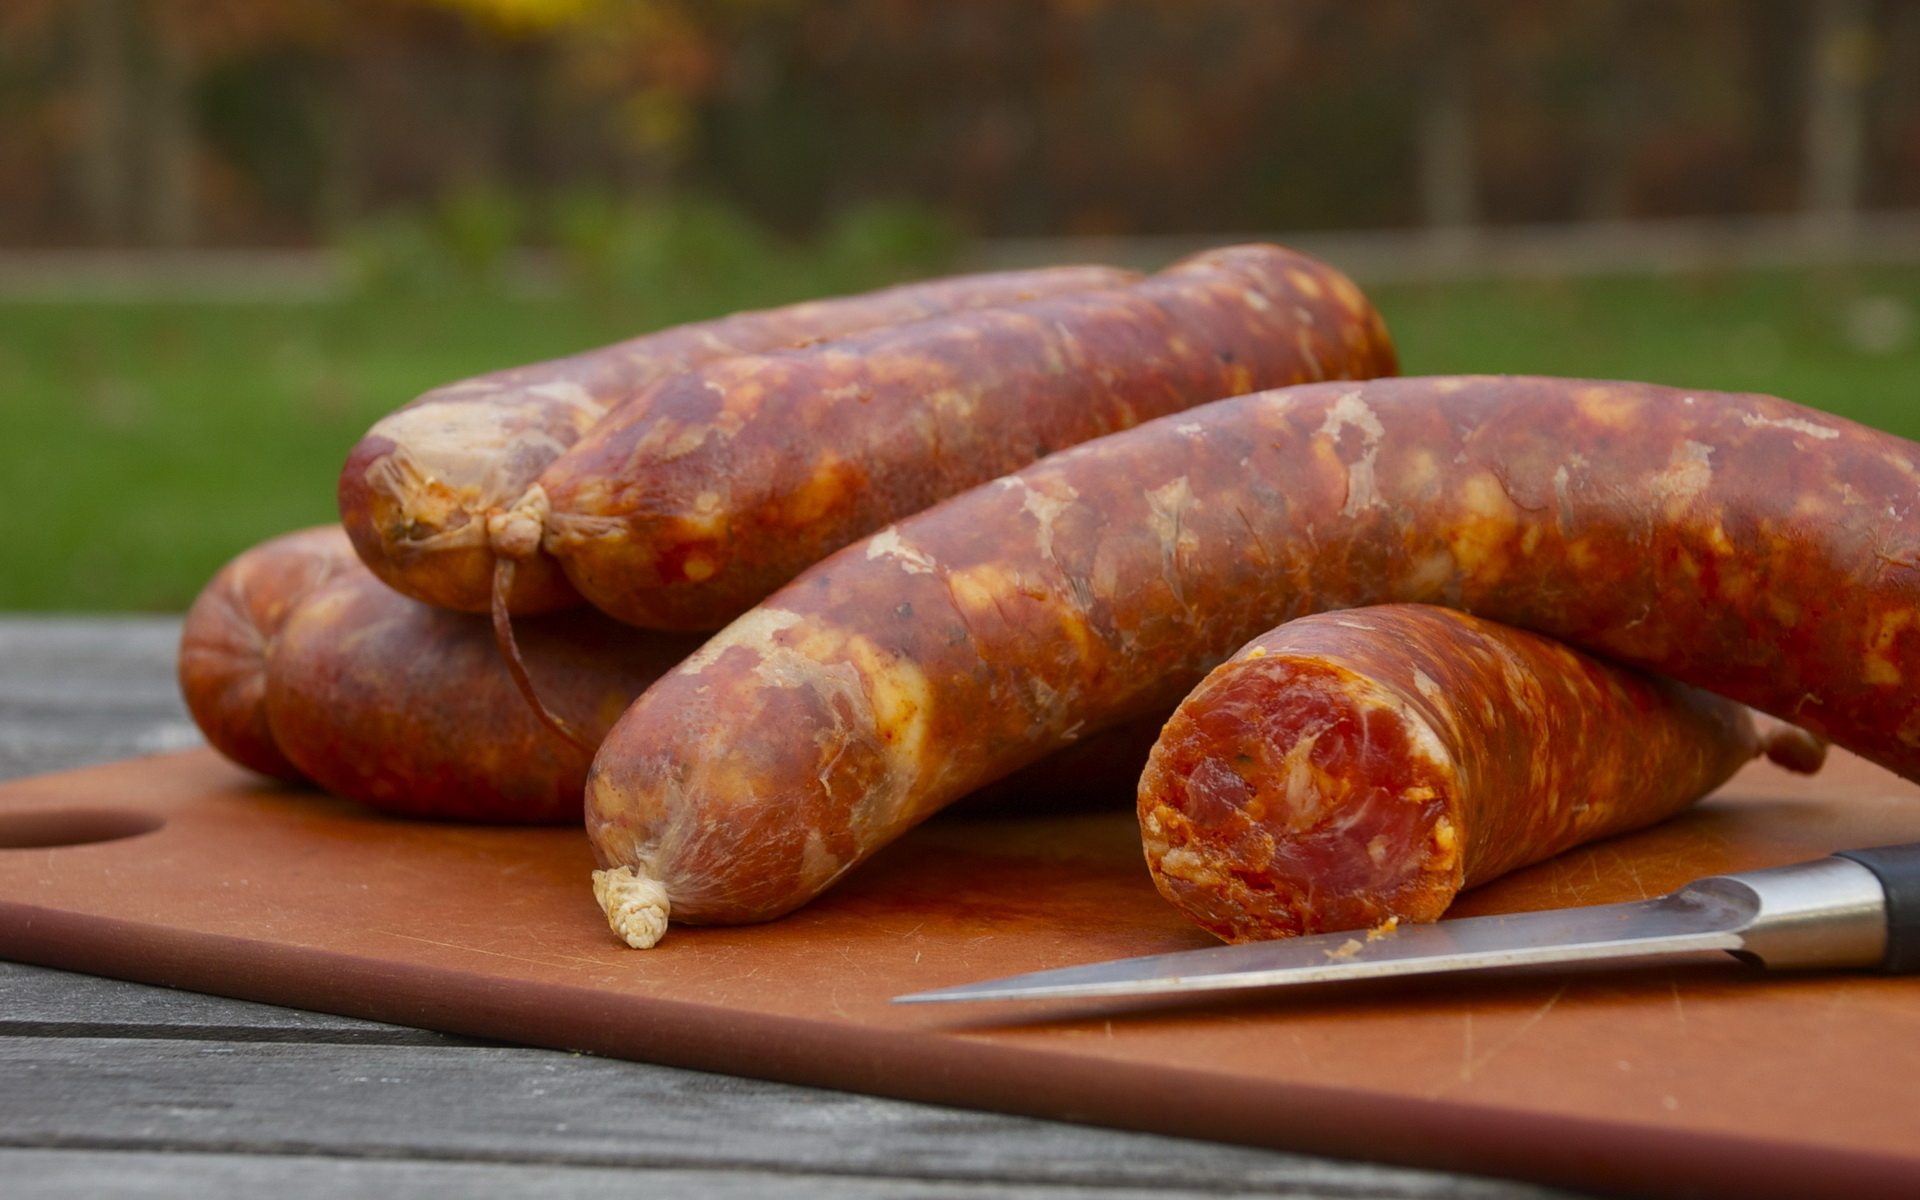 Sausages wallpapers and images   wallpapers pictures photos 1920x1200